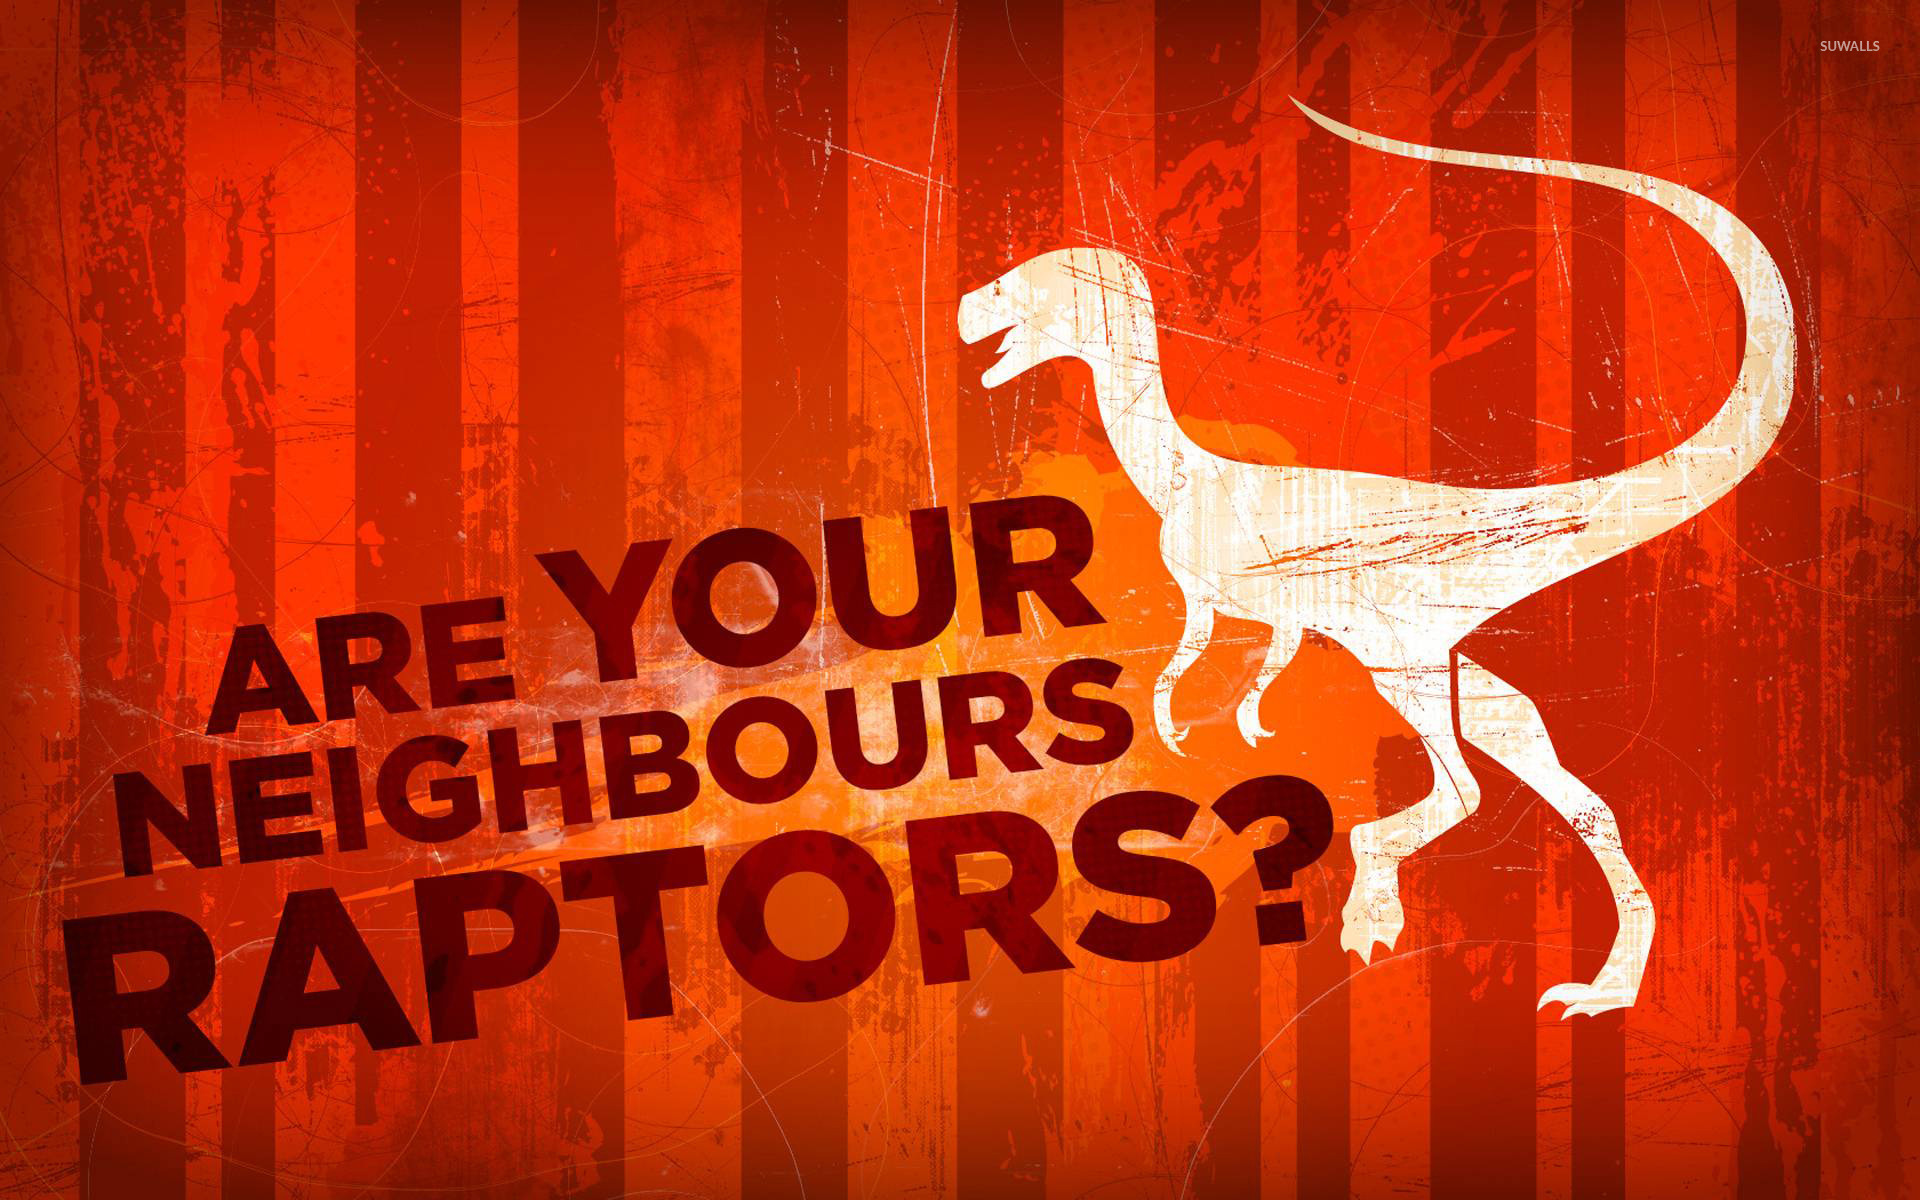 are your neighbours raptors wallpaper funny wallpapers